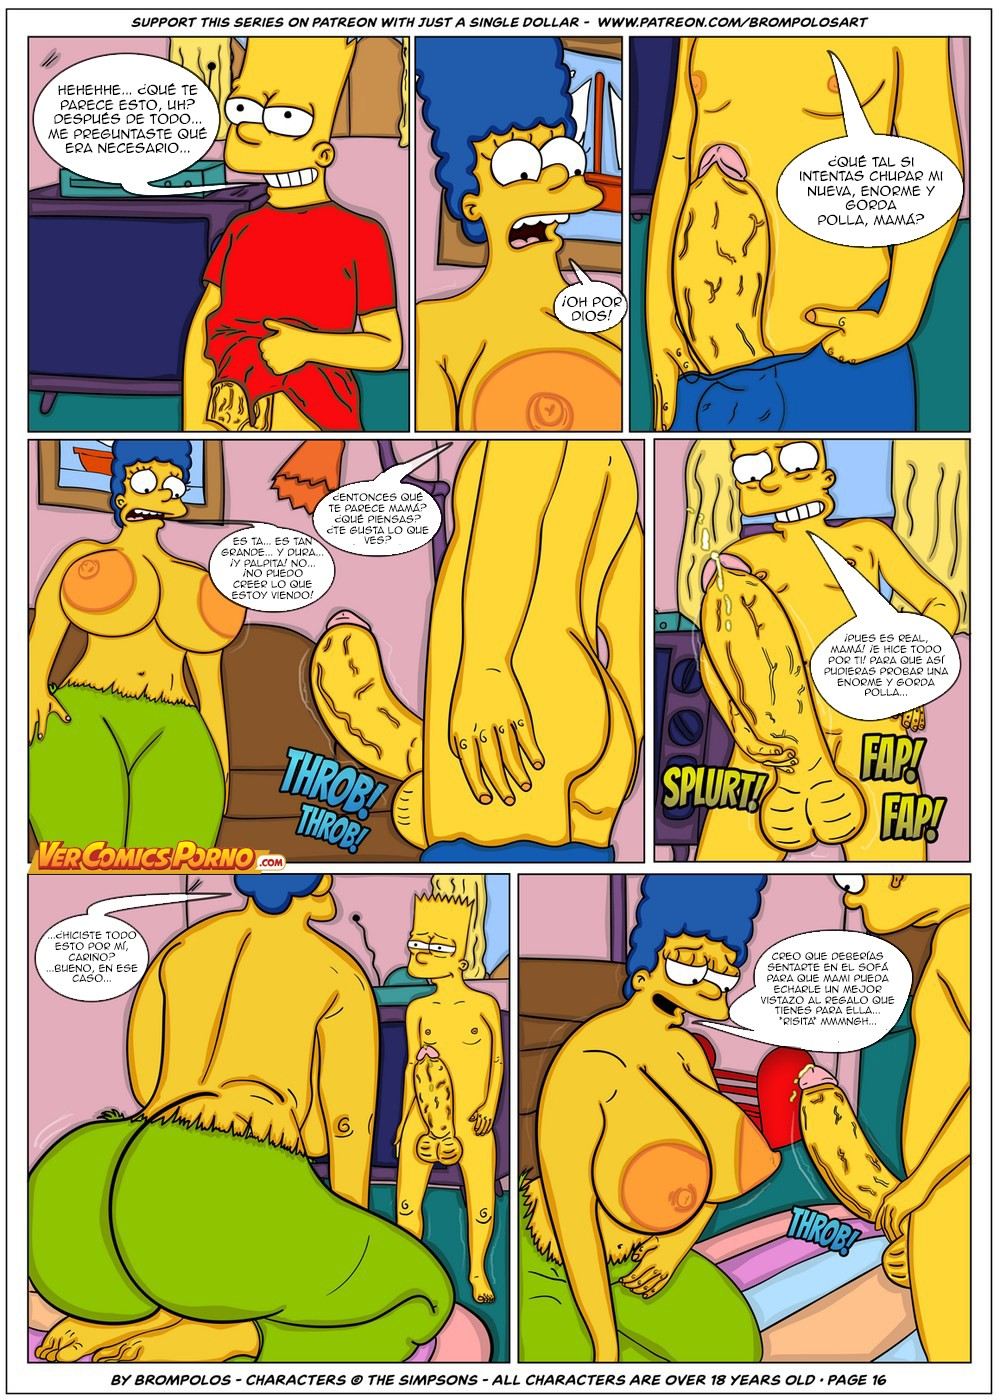 Brompolos-The-Simpsons-are-The-Sexenteins-19.jpg